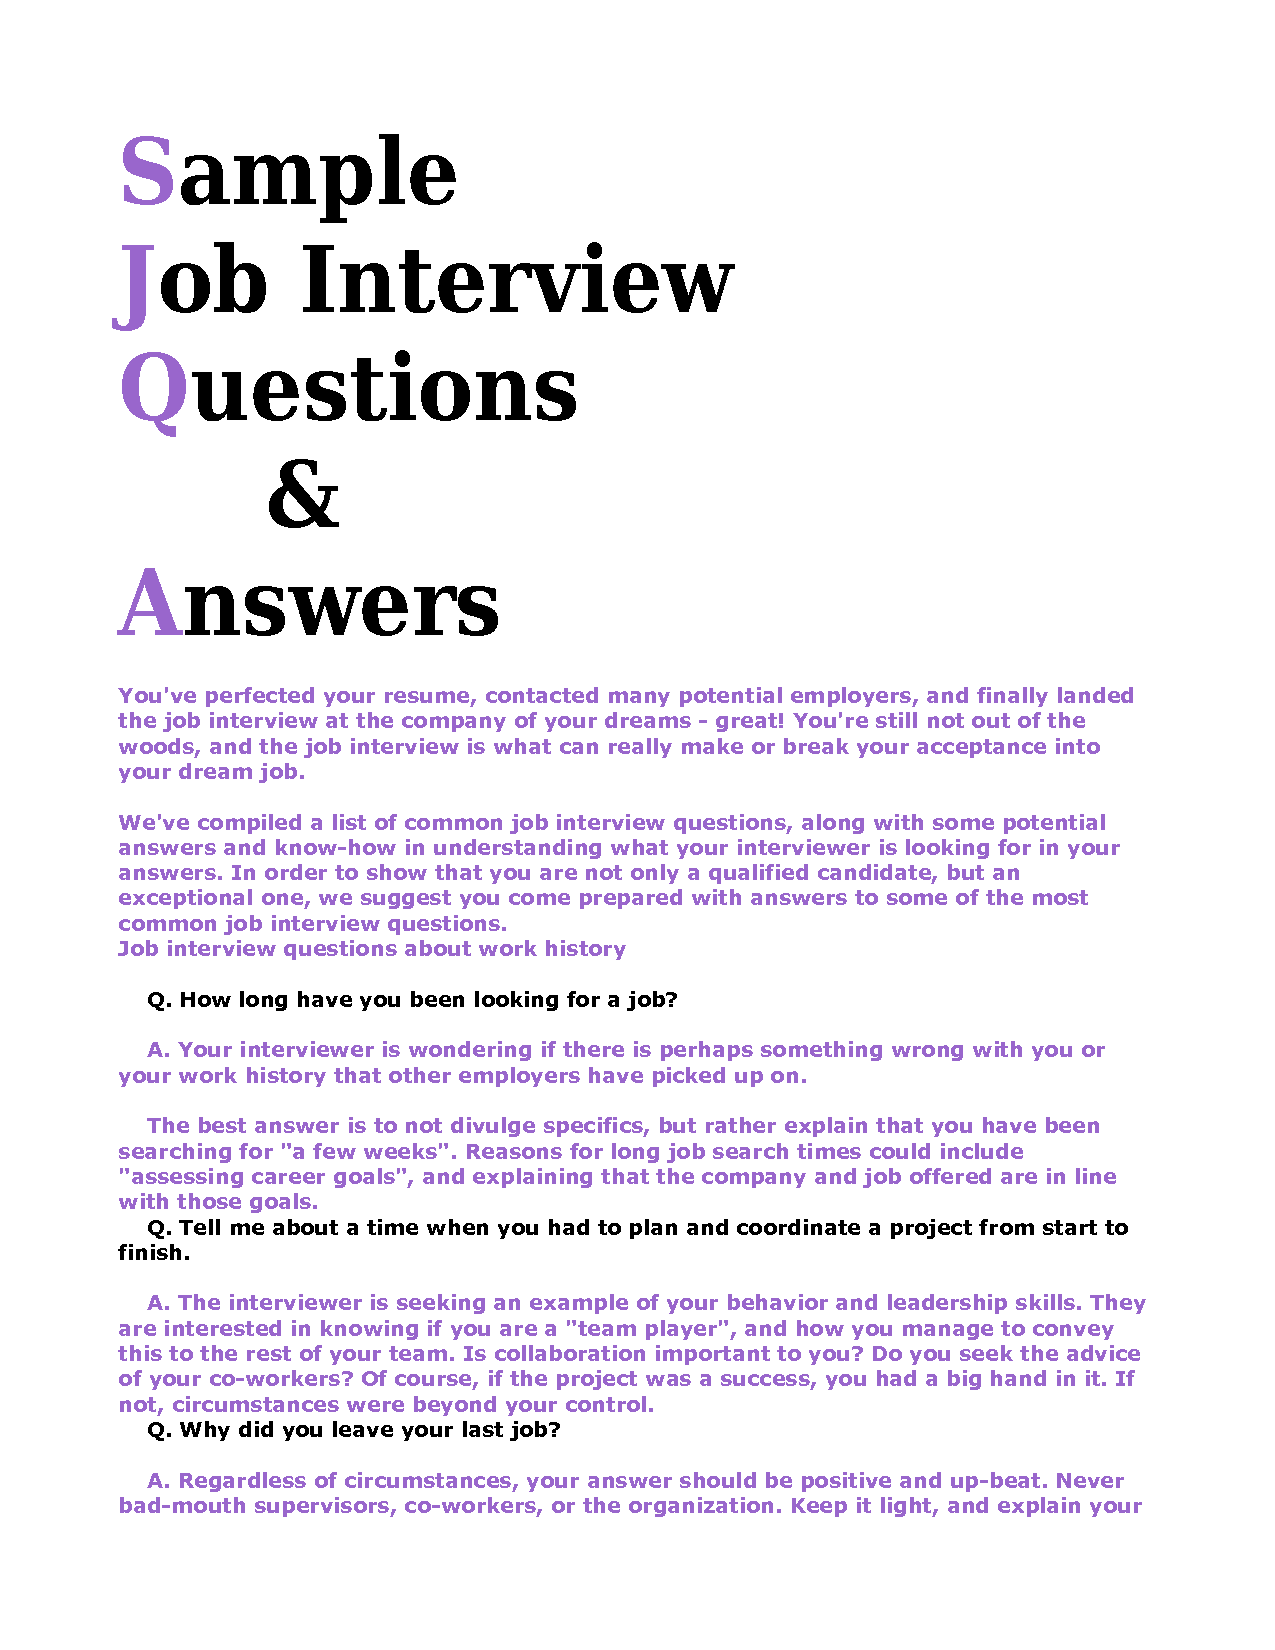 How to Answer Job Interview Questions - Security Guards ...